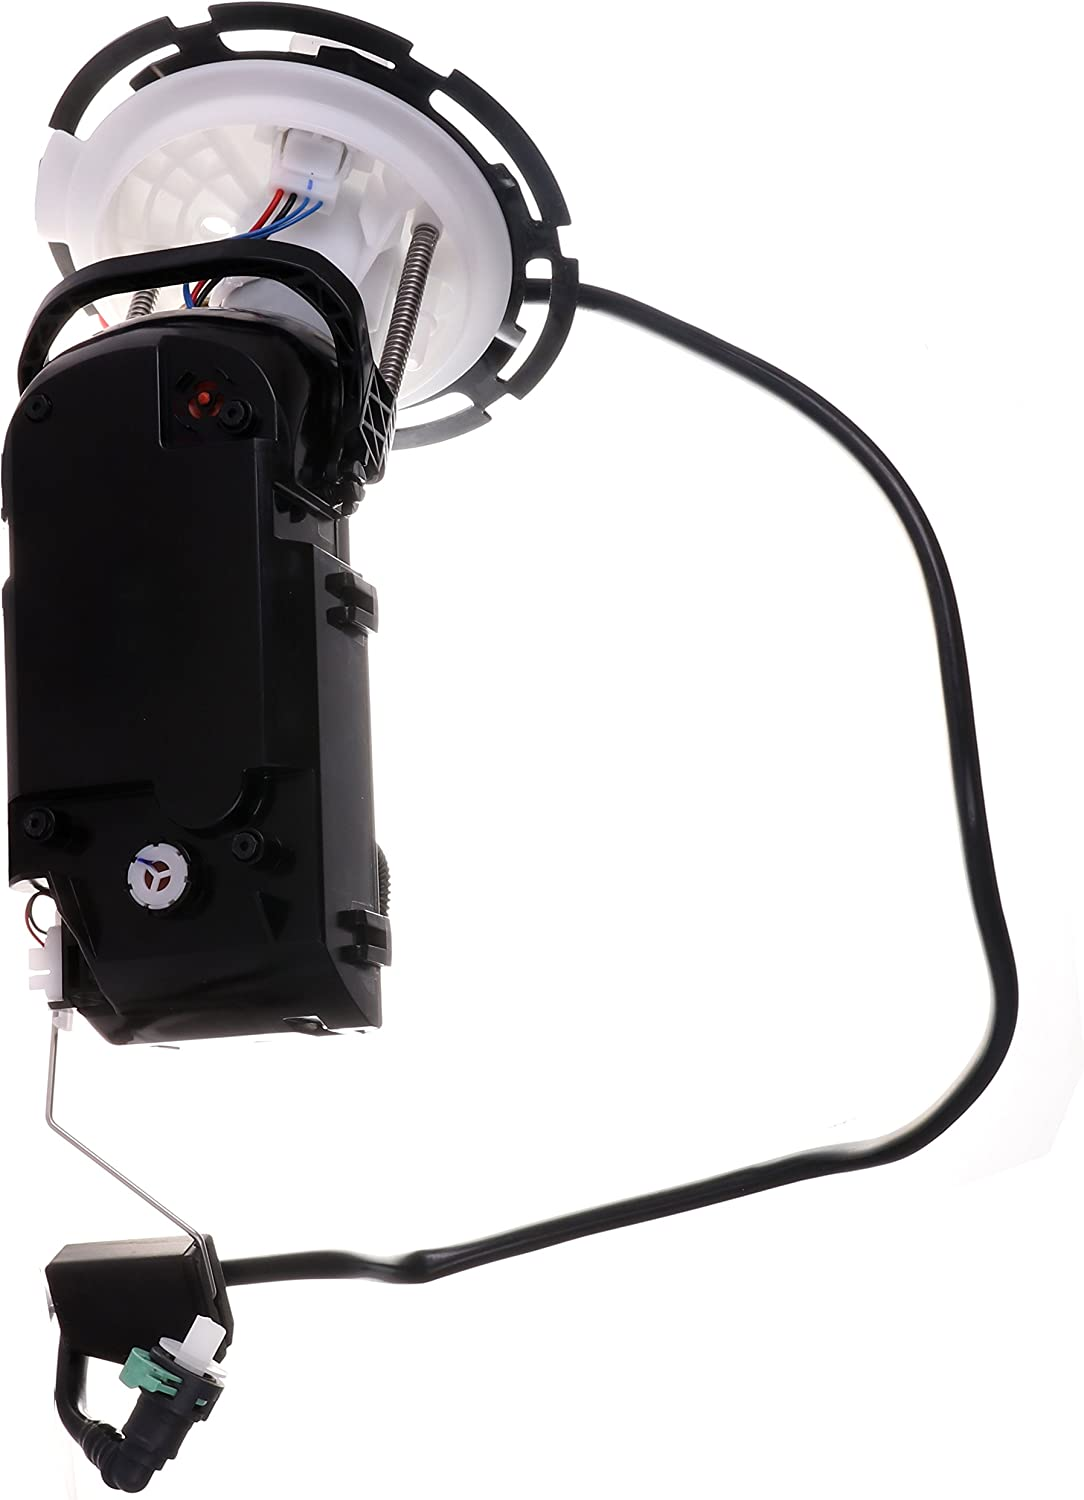 Ineedup Replacement for Surprise price Electric Fuel Max 85% OFF G E3812M 2009 Pump Pontiac